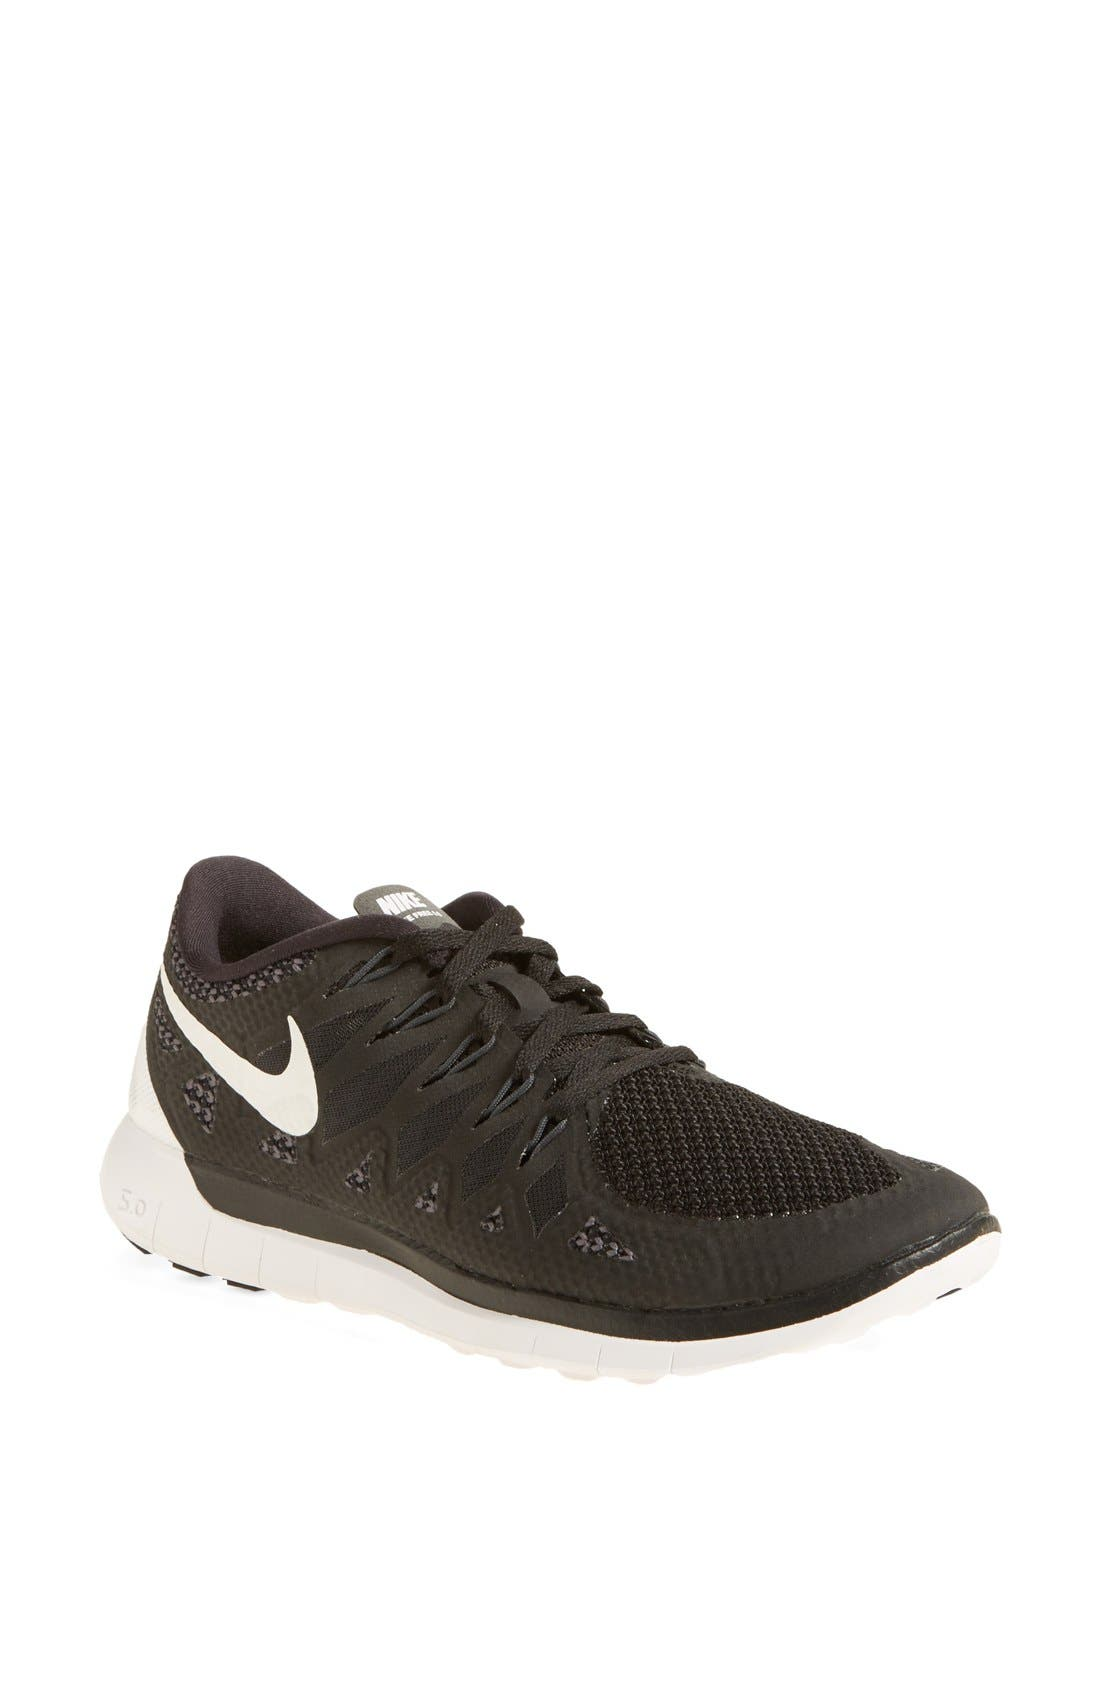 'Free 5.0 14' Running Shoe,                         Main,                         color, 001